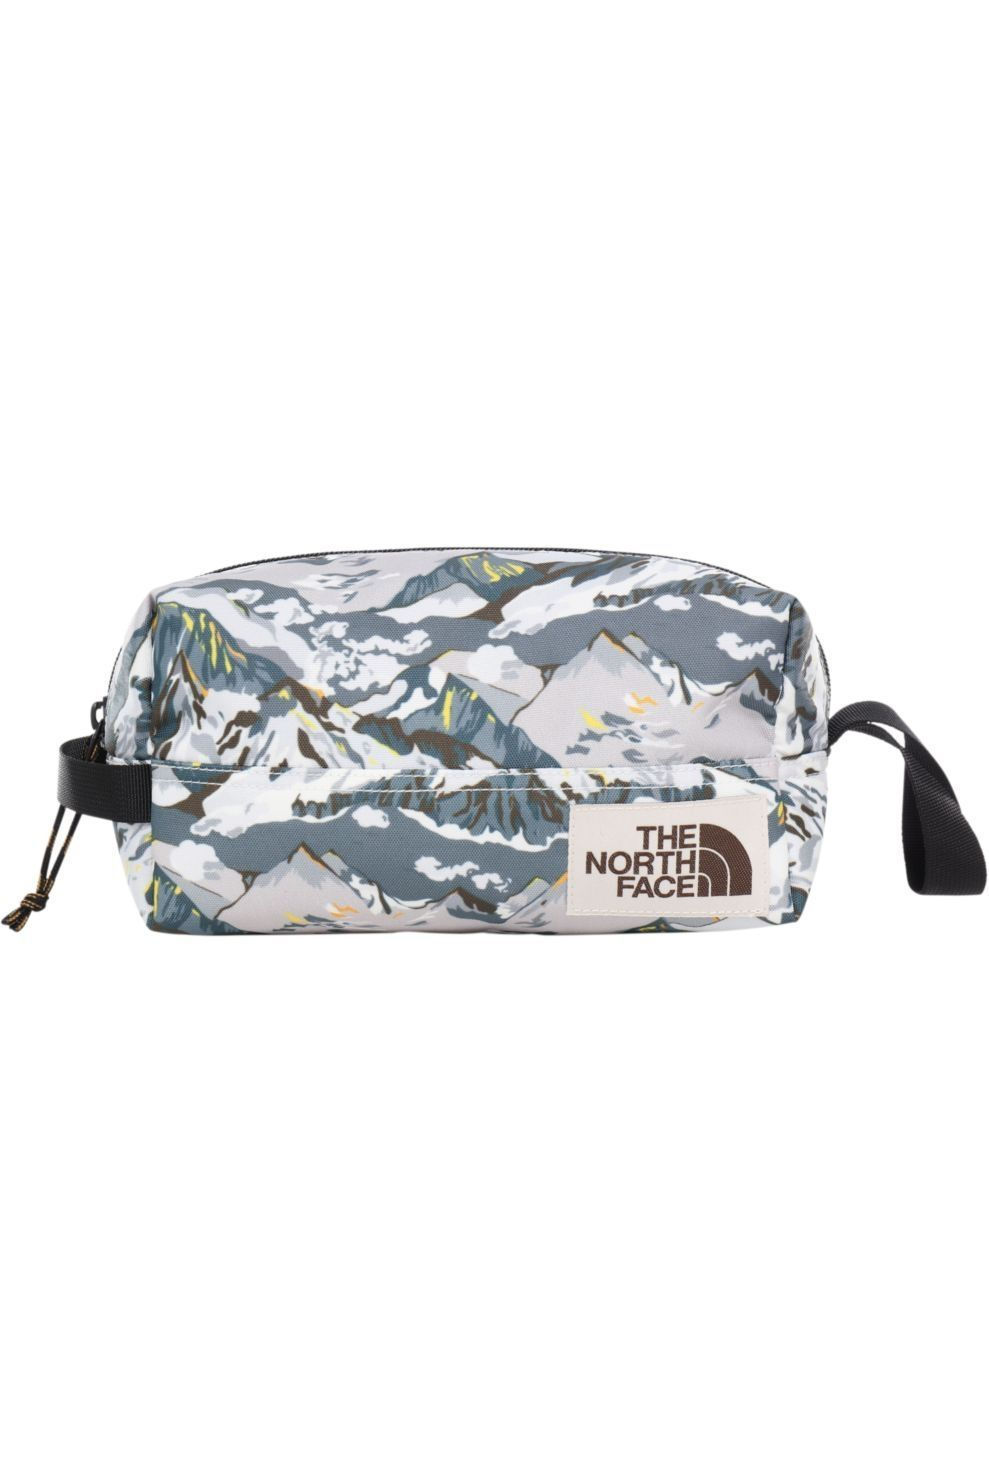 The North Face Toilettas Liberty Toiletry Kit - Wit/Grijs